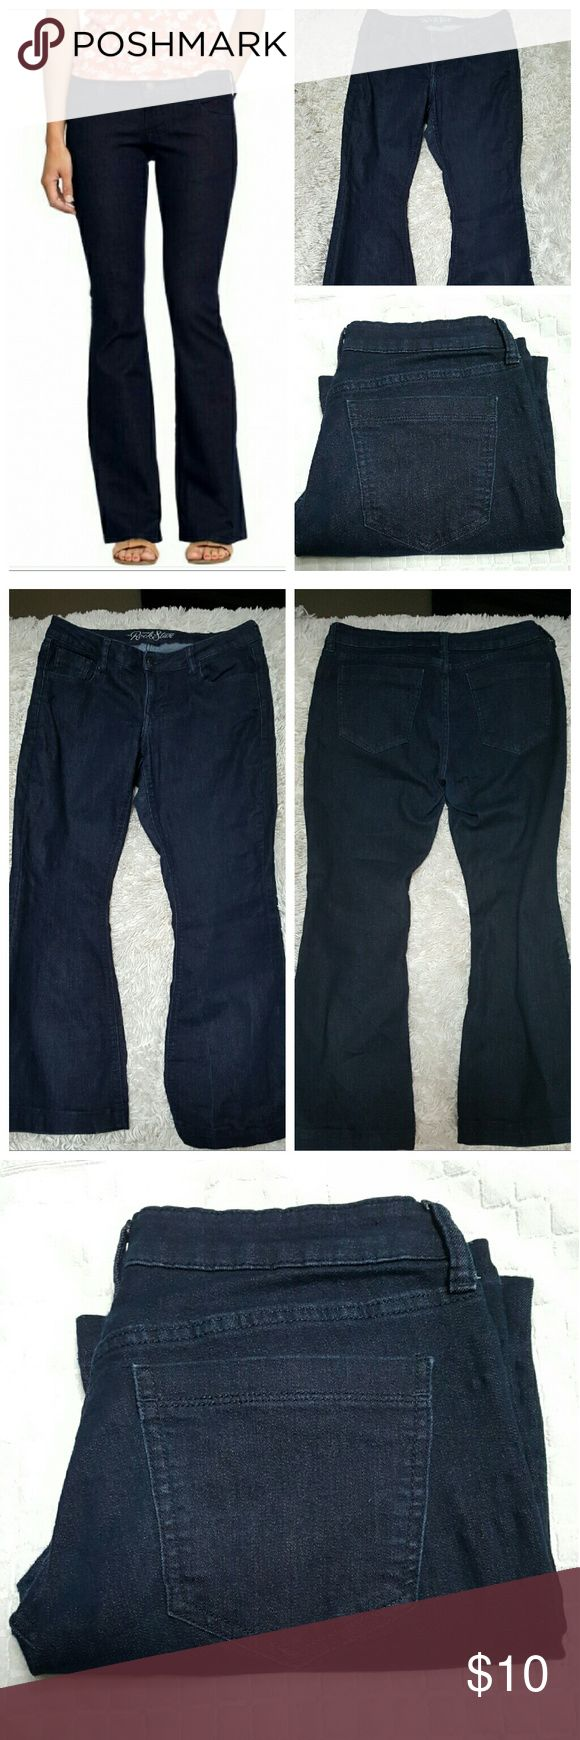 """Old Navy Rockstar Jeans sz 12 29"""" inseam,  rise 8"""" , waist laying flat 16"""", total all around waist 32"""". Price firm no offers, thanku. Old Navy Jeans Boot Cut"""